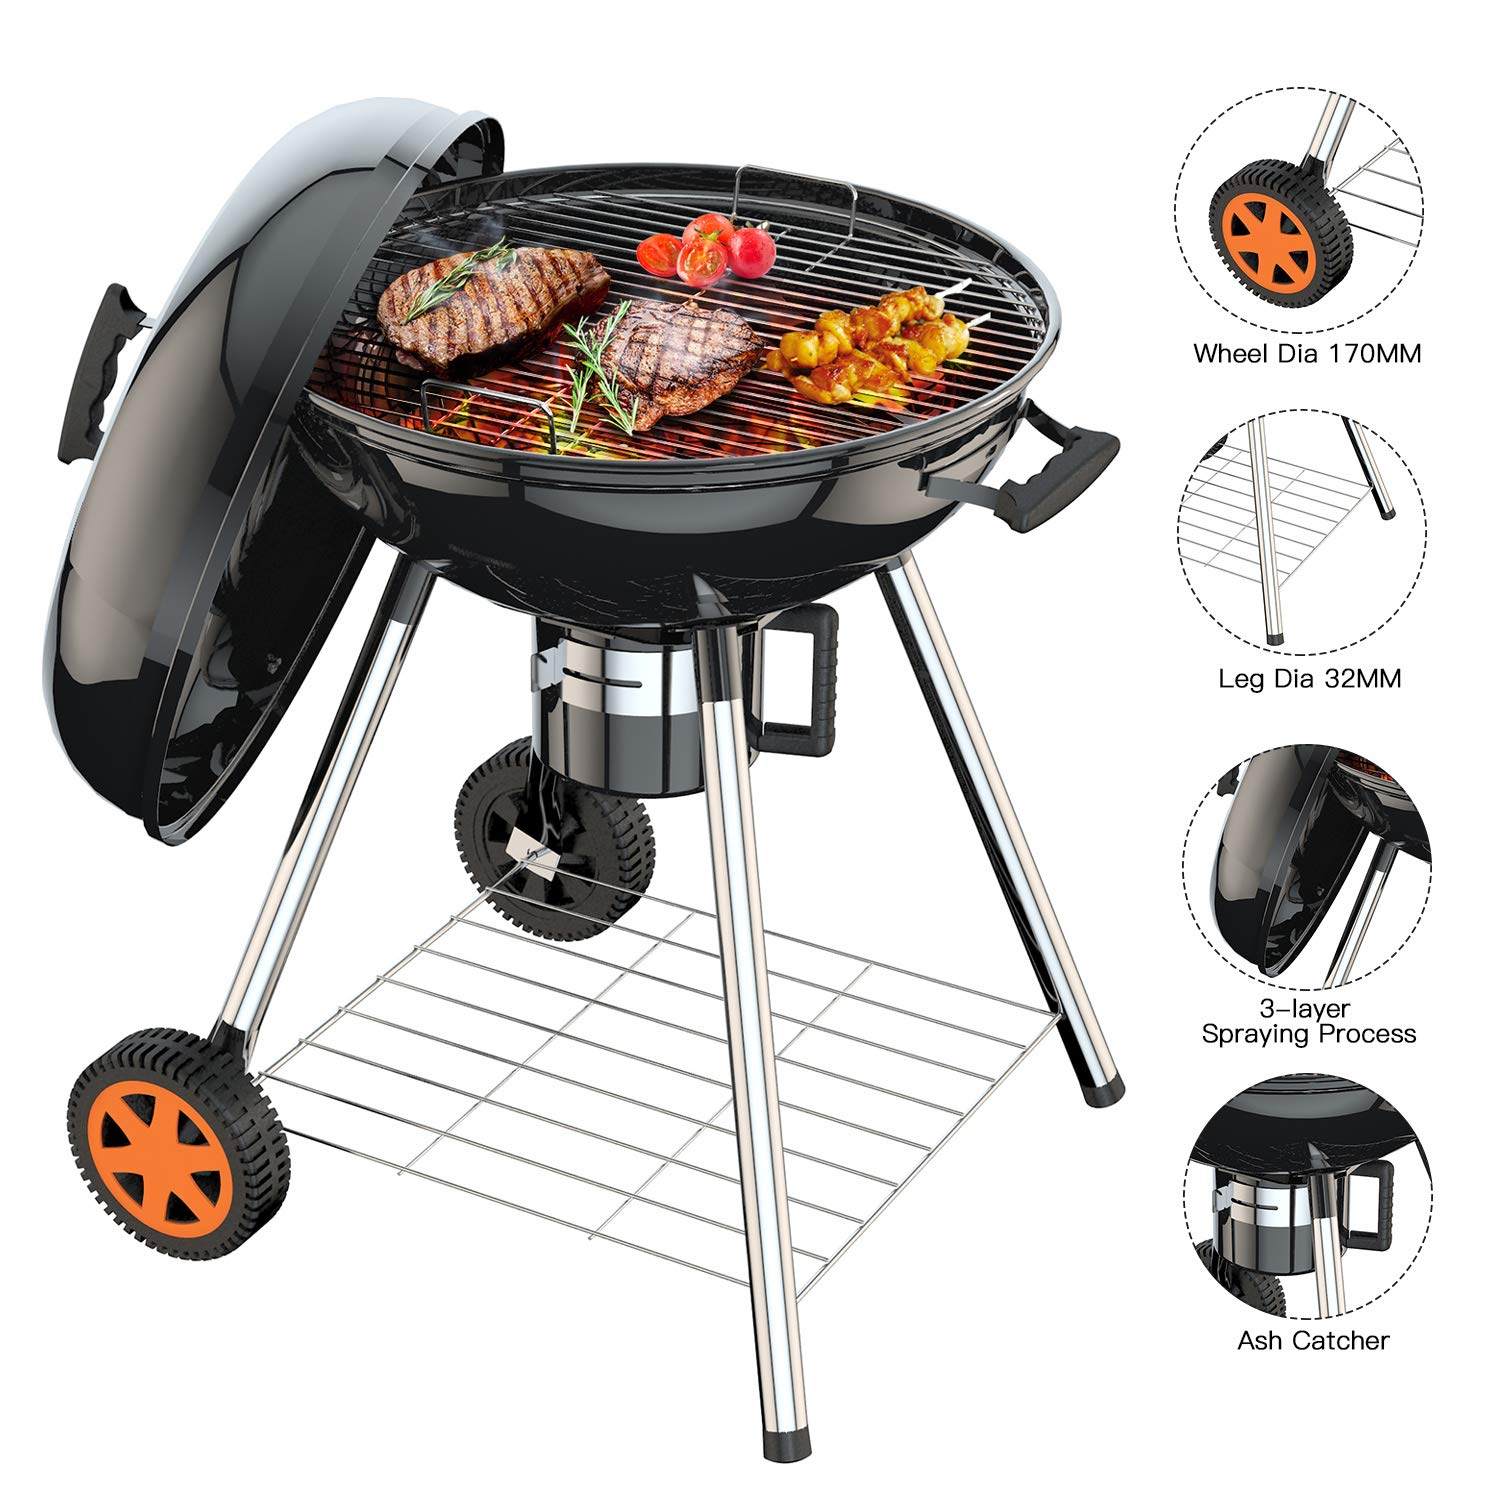 TACKLIFE 22.5 inch Large Charcoal Grill for Outdoor Grilling Barbecue, Camping Cooking, Portable BBQ Grill by TACKLIFE